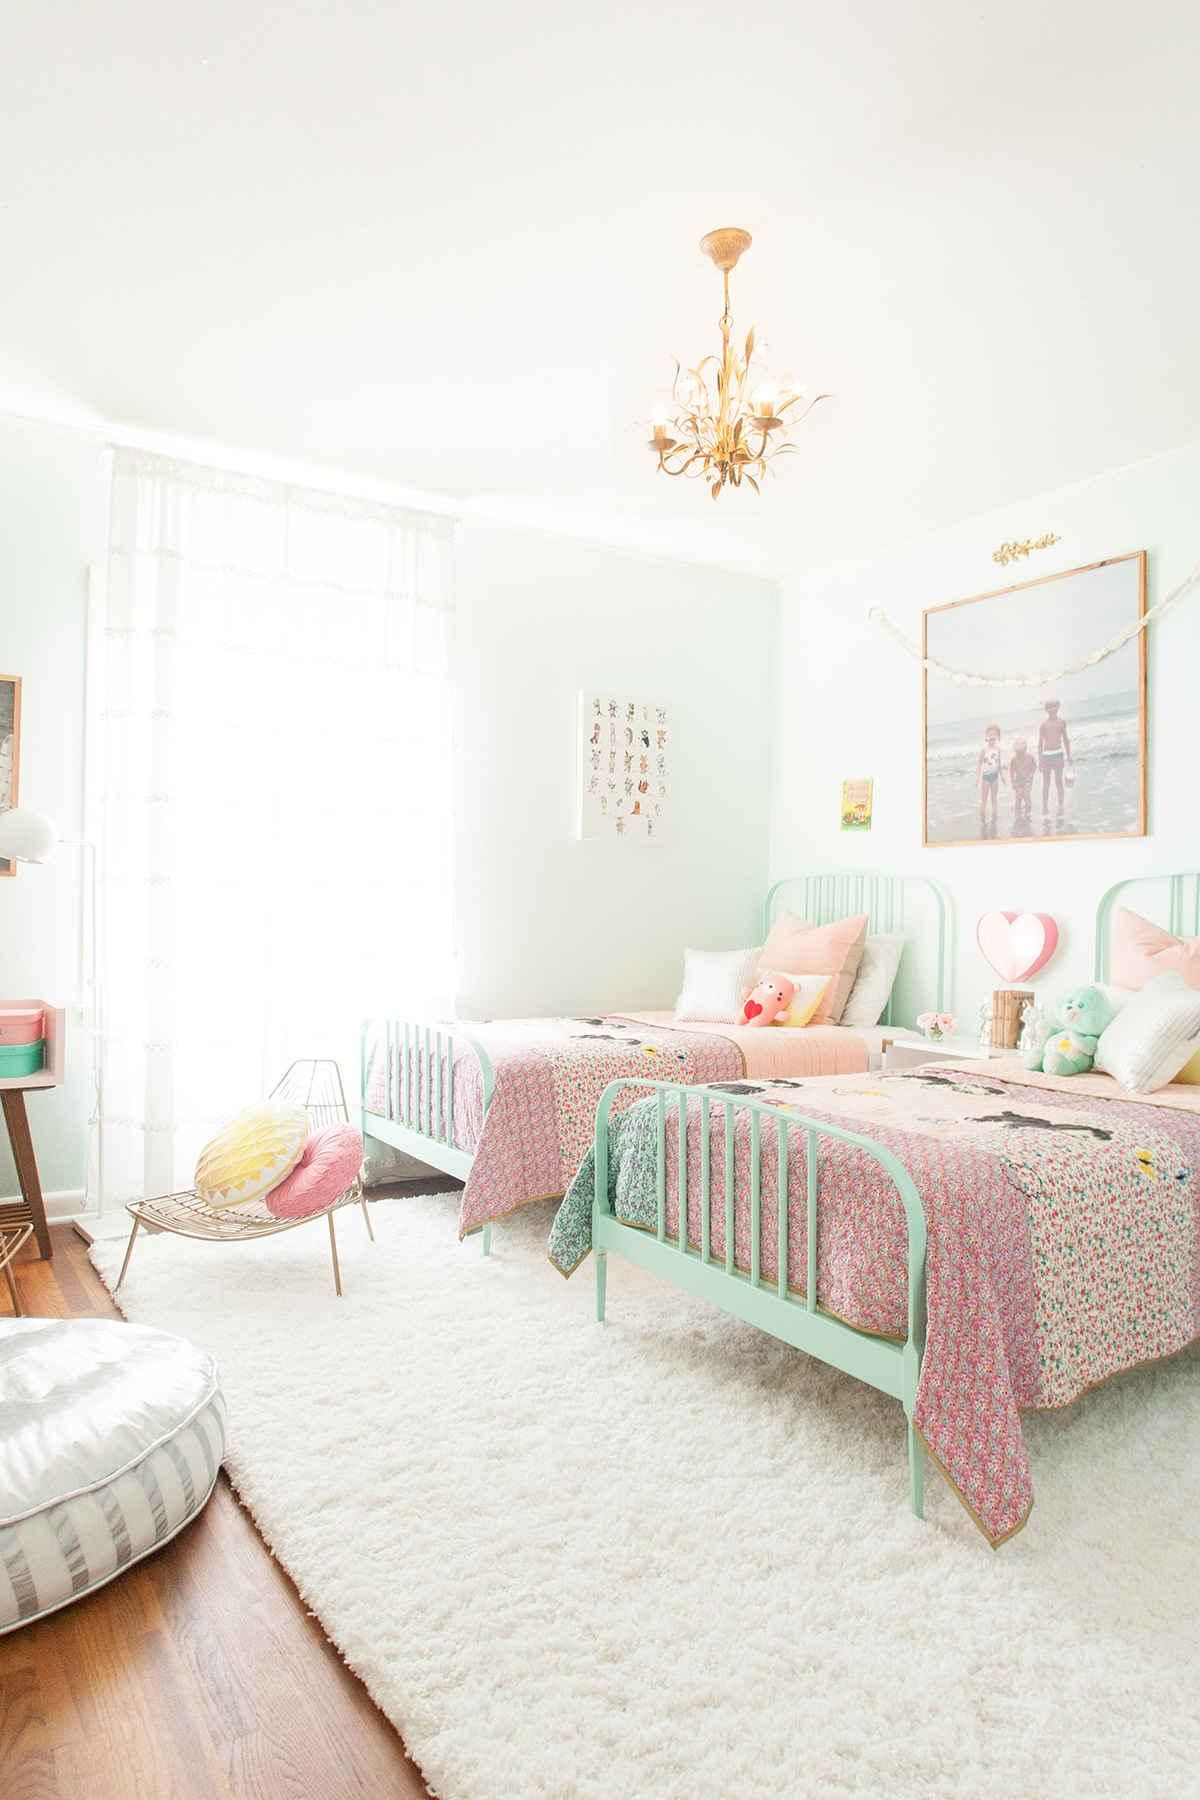 shared girls room inspiration! | Habitación niñas | Pinterest ...